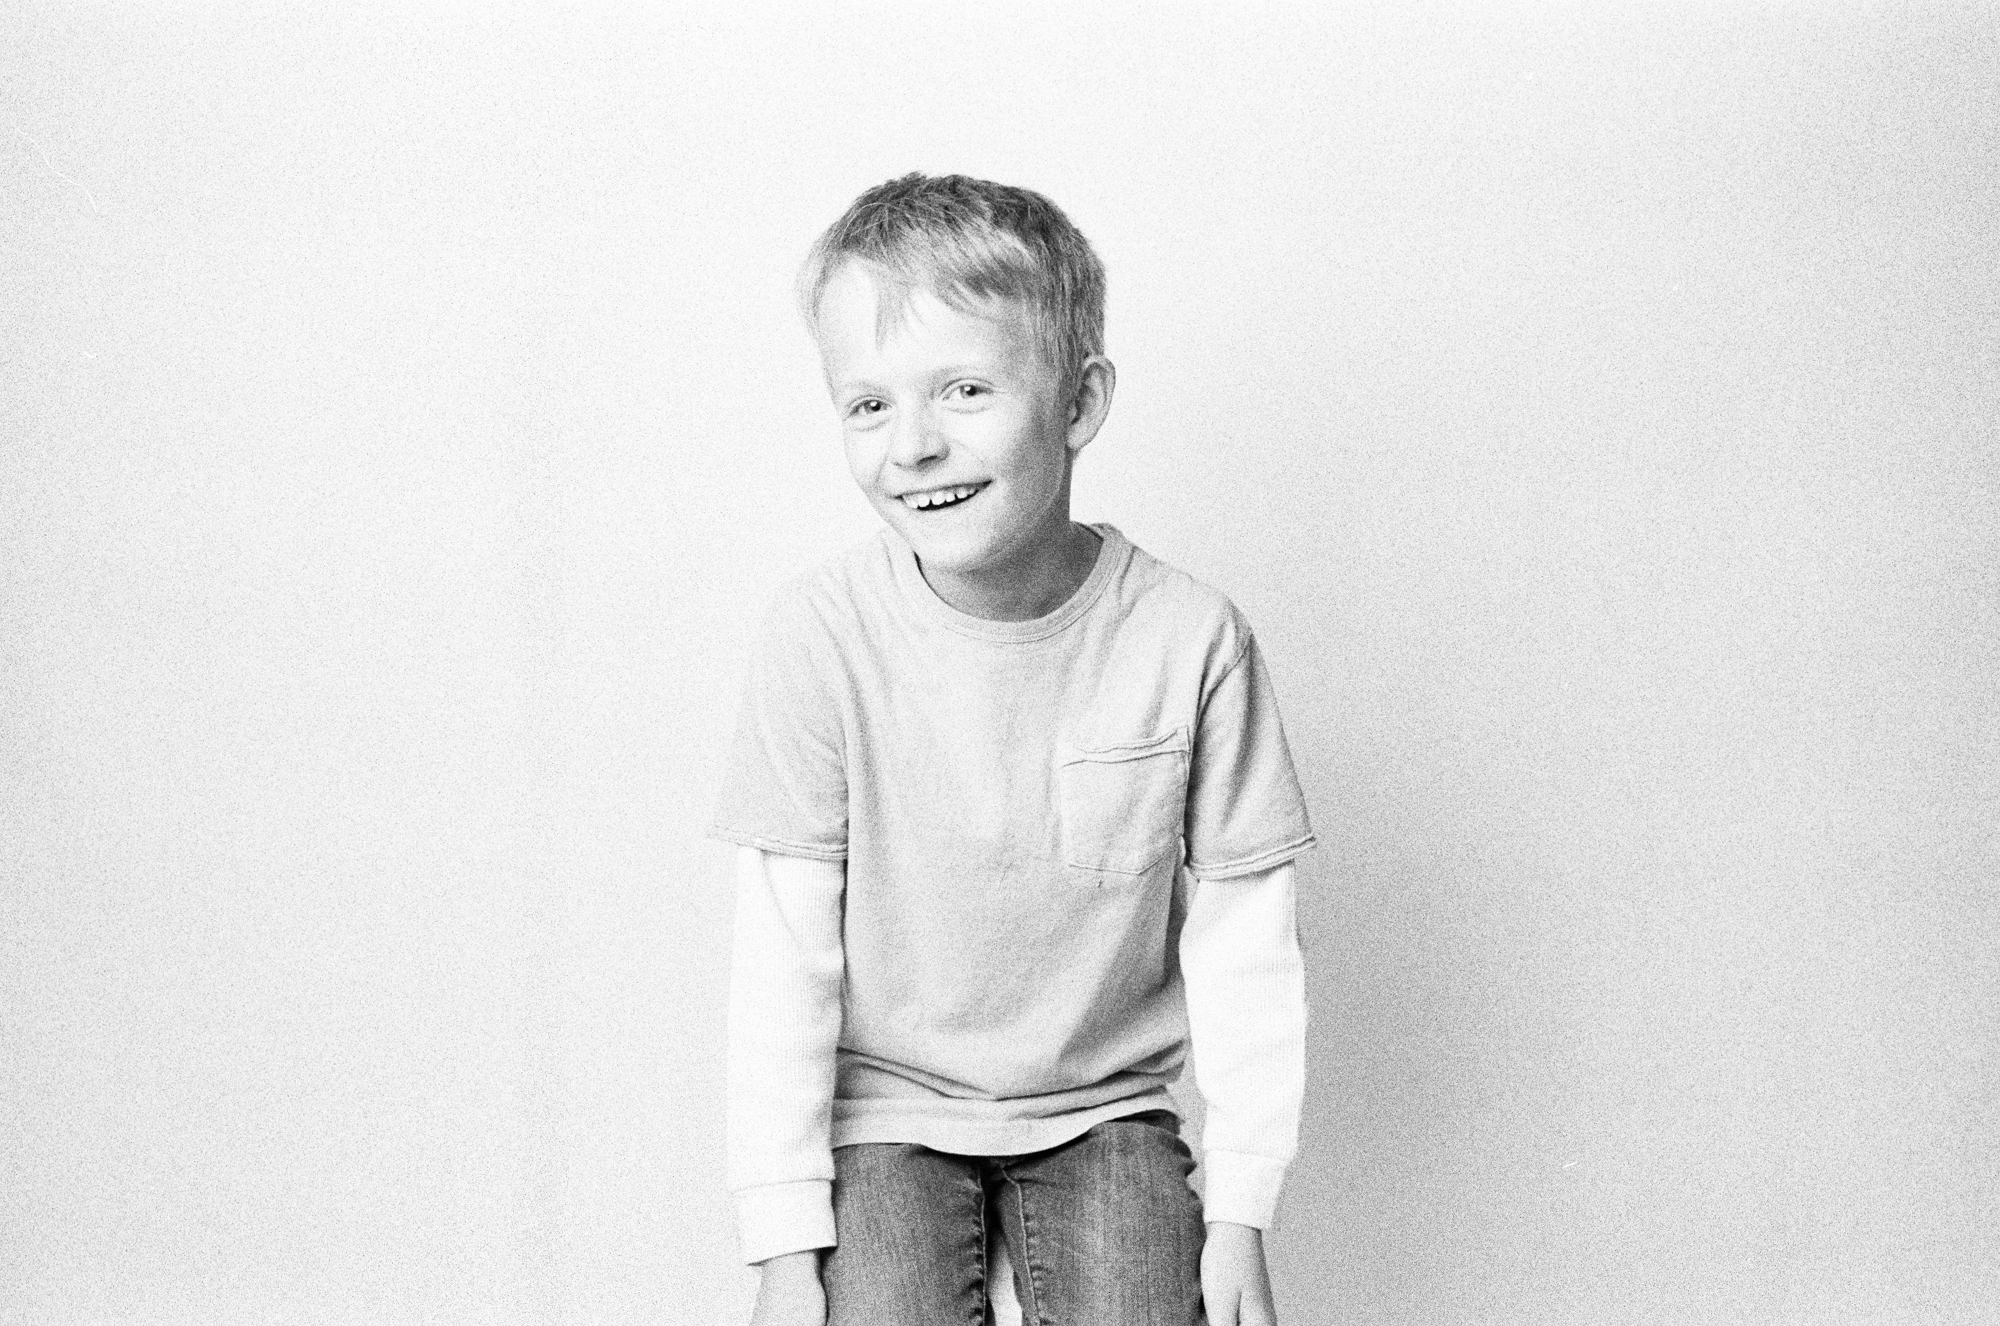 Kid-Laughing-Black-and-white-film-HP5-Nikon-F100-Film-Photographers.jpg